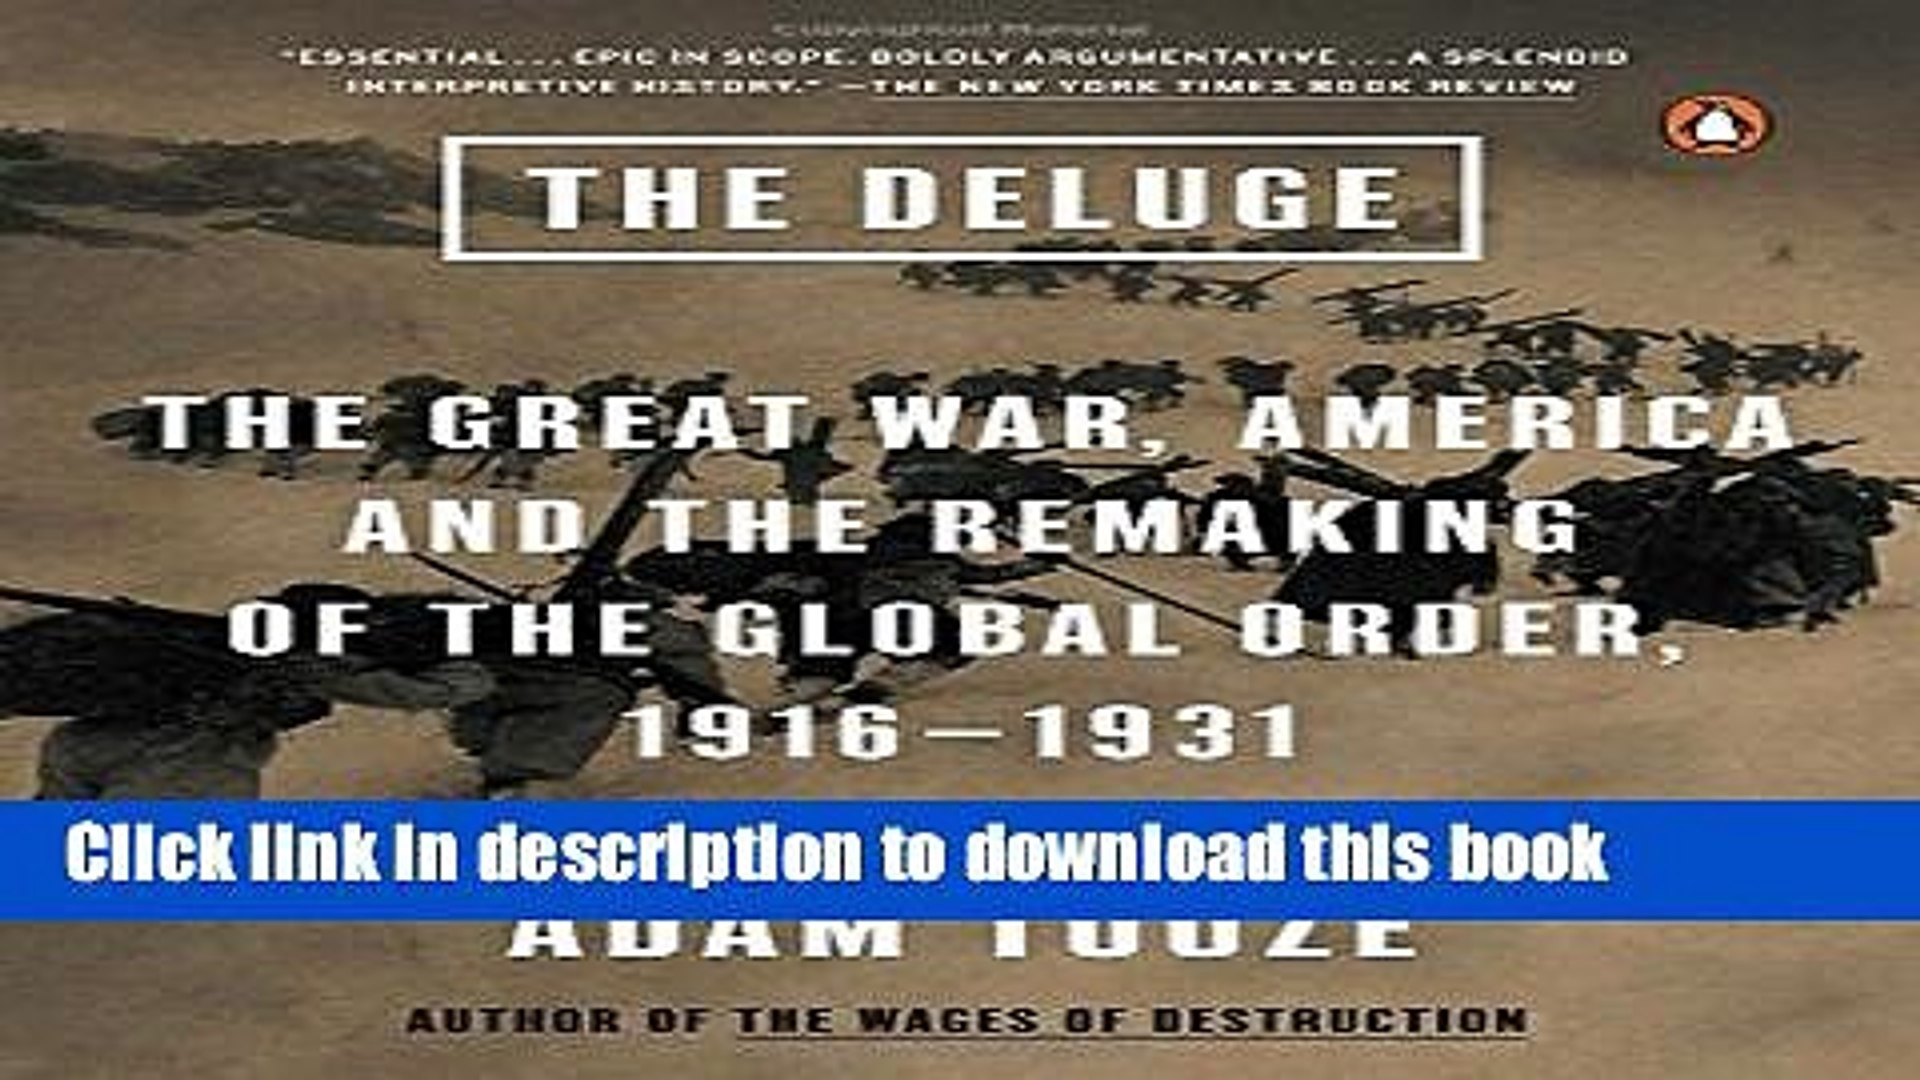 Read Books The Deluge: The Great War, America and the Remaking of the Global Order, 1916-1931